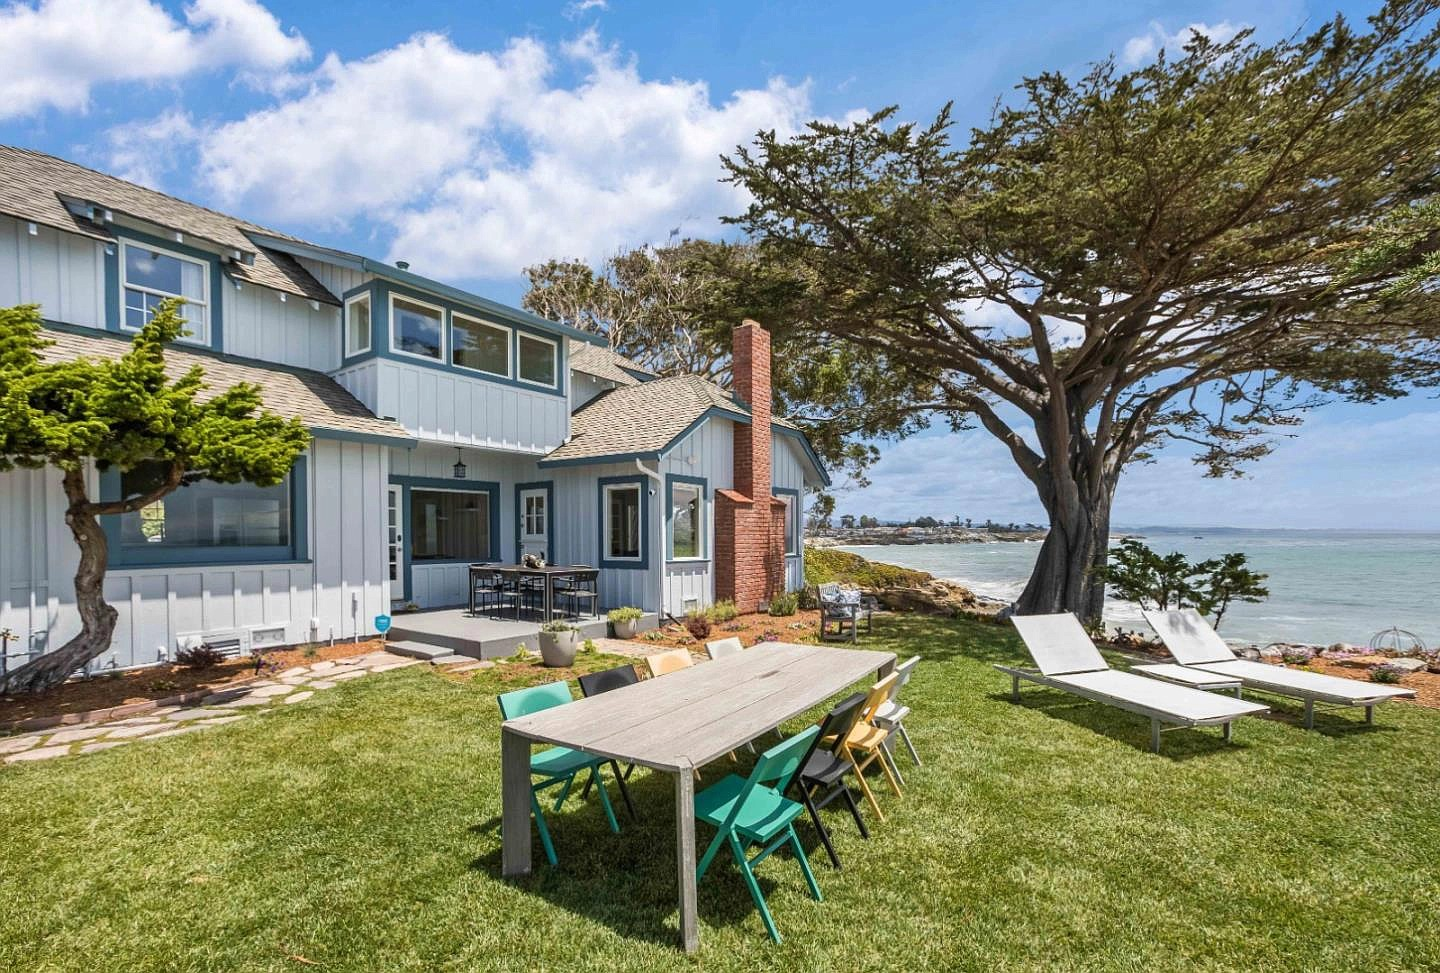 1307 W Cliff Dr, Santa Cruz, CA 95060 - $5,495,000 home for sale, house images, photos and pics gallery